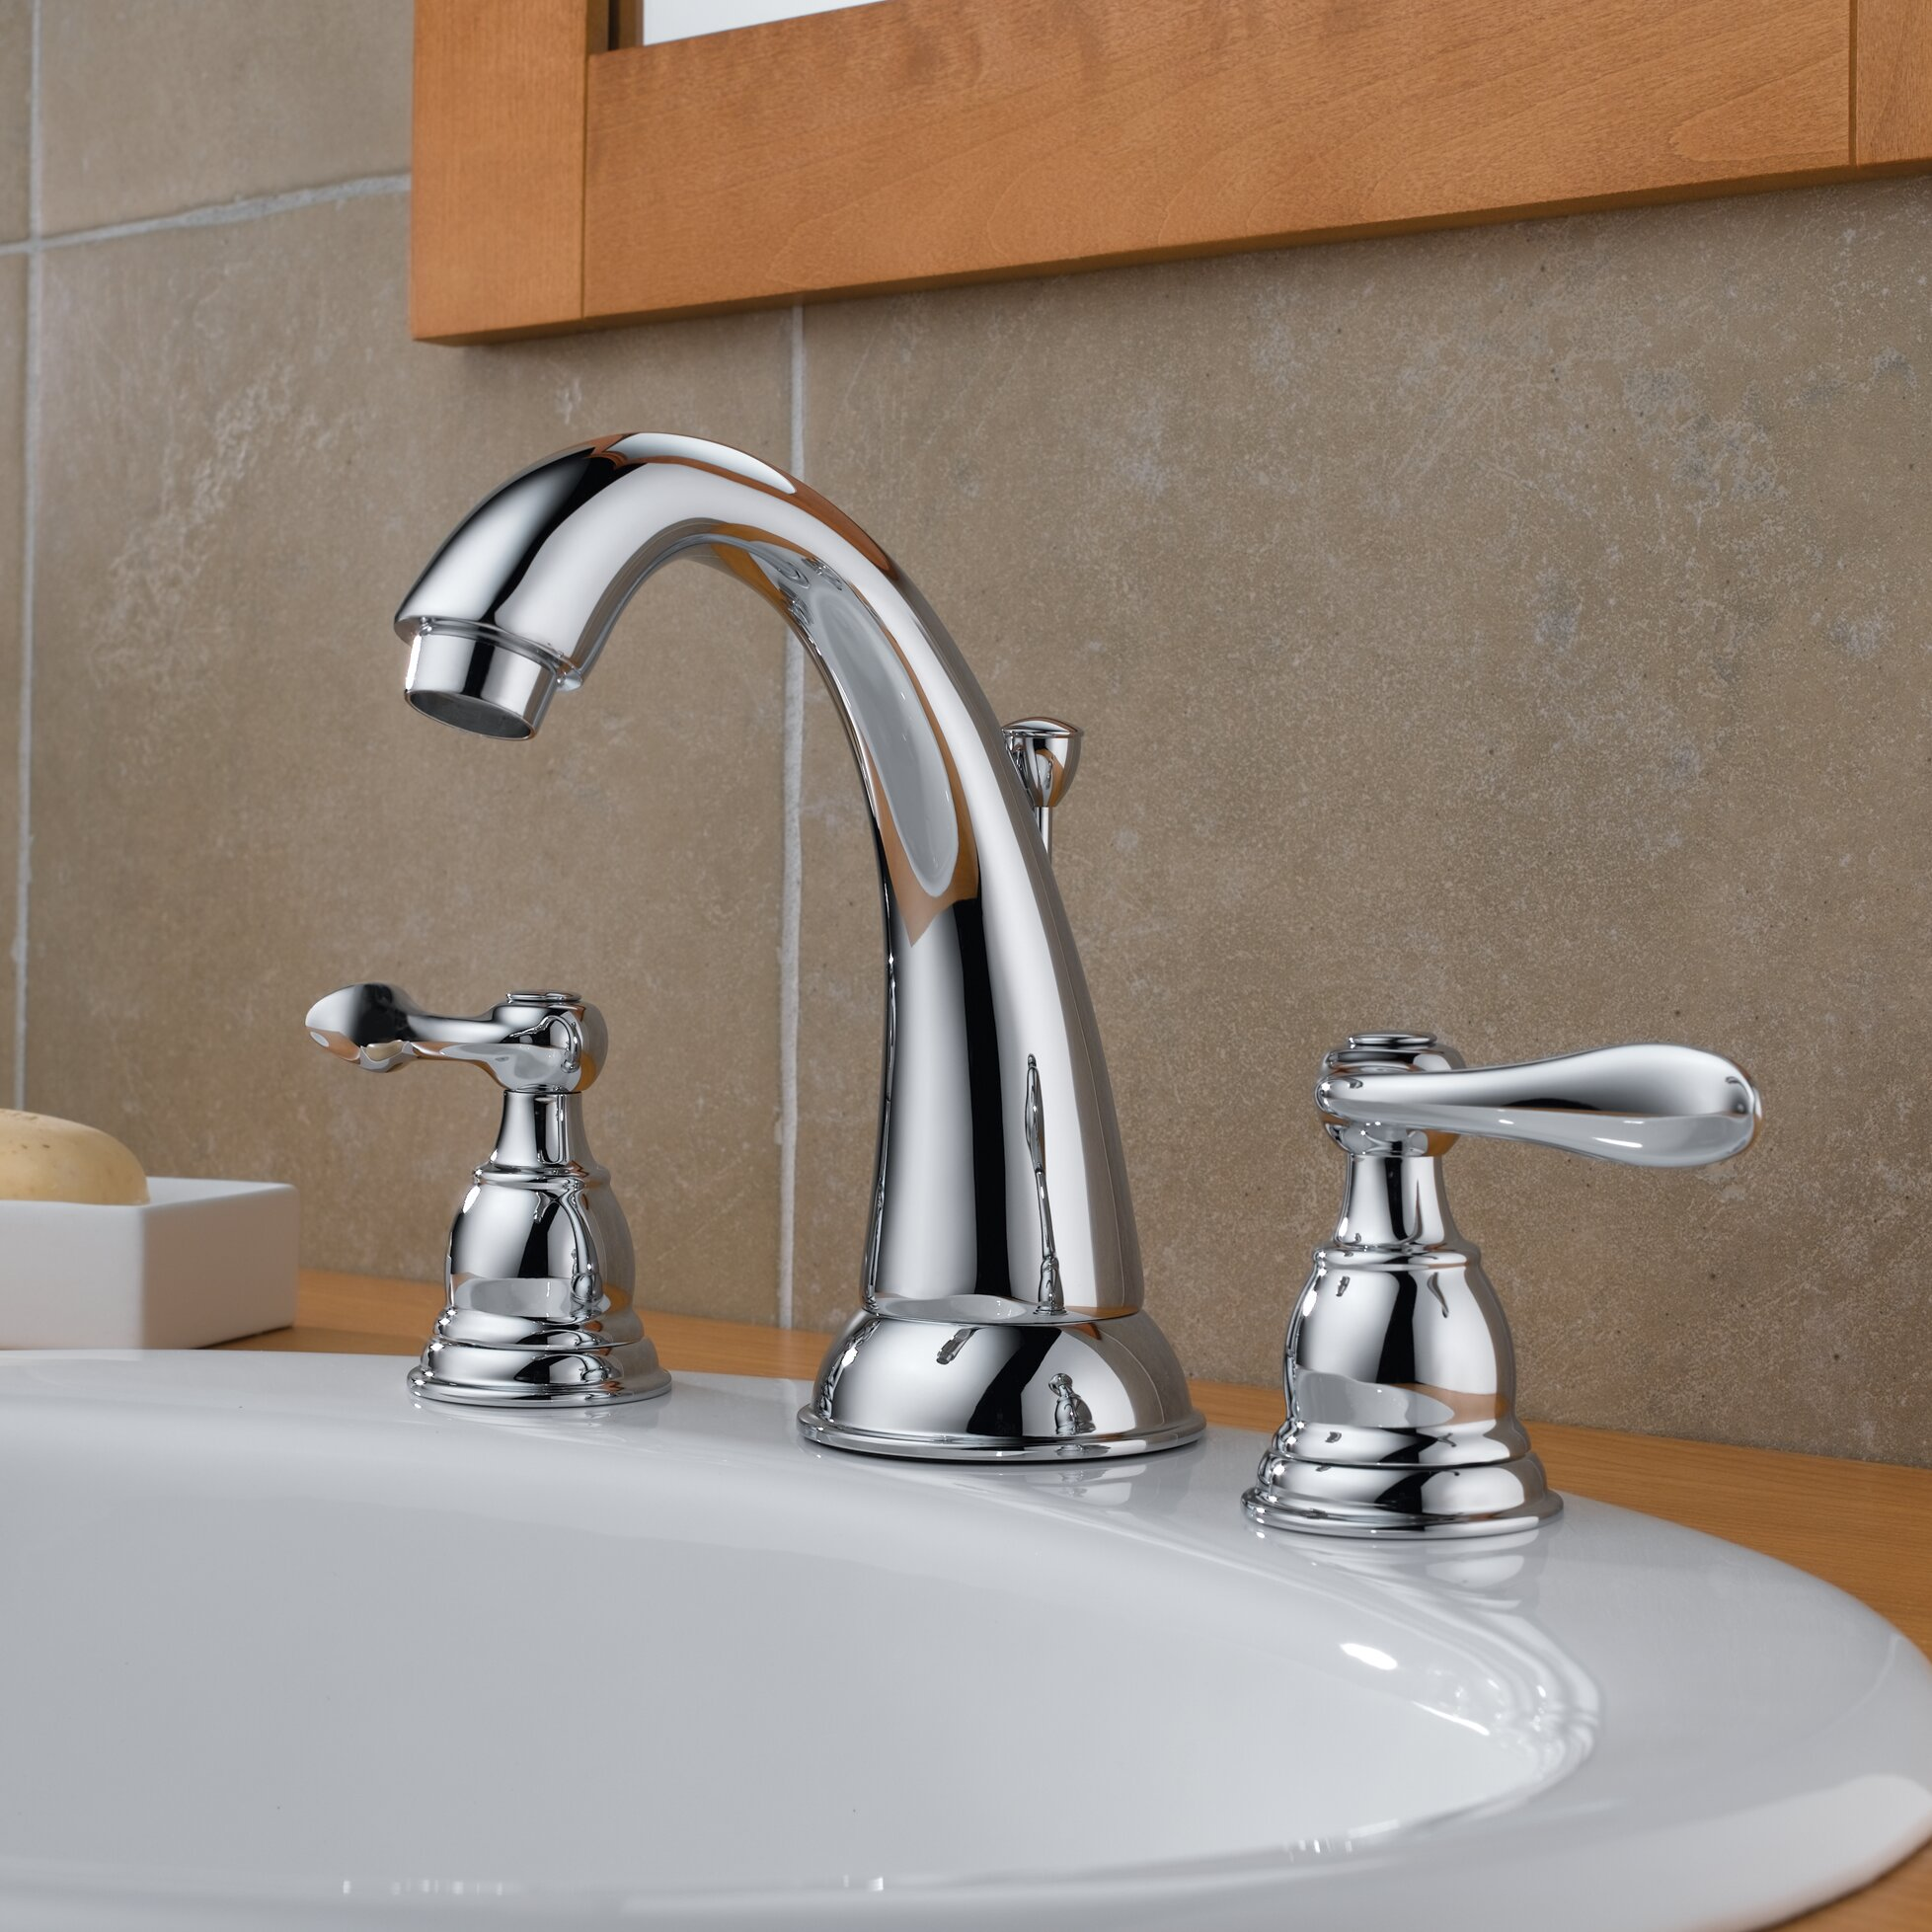 Delta windemere widespread bathroom faucet with double lever handles reviews wayfair for Delta two handle bathroom faucet